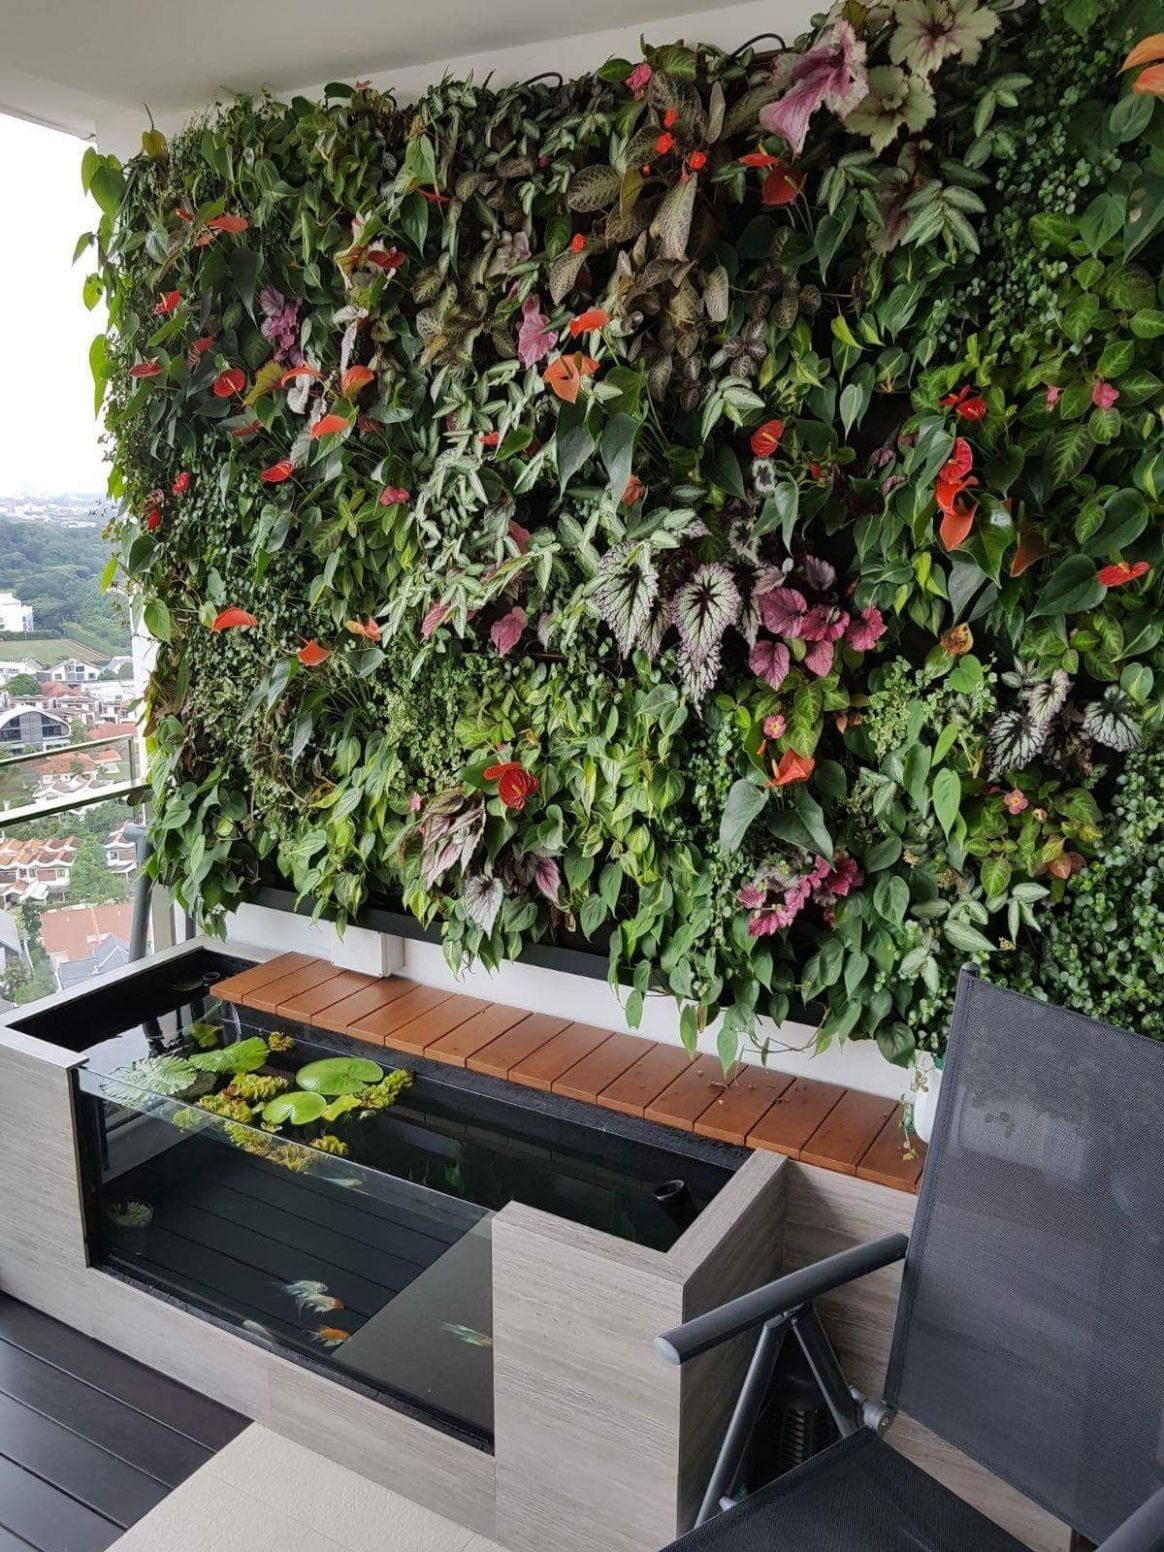 Green wall aquaponics (With images) | Indoor water garden, Ponds ...